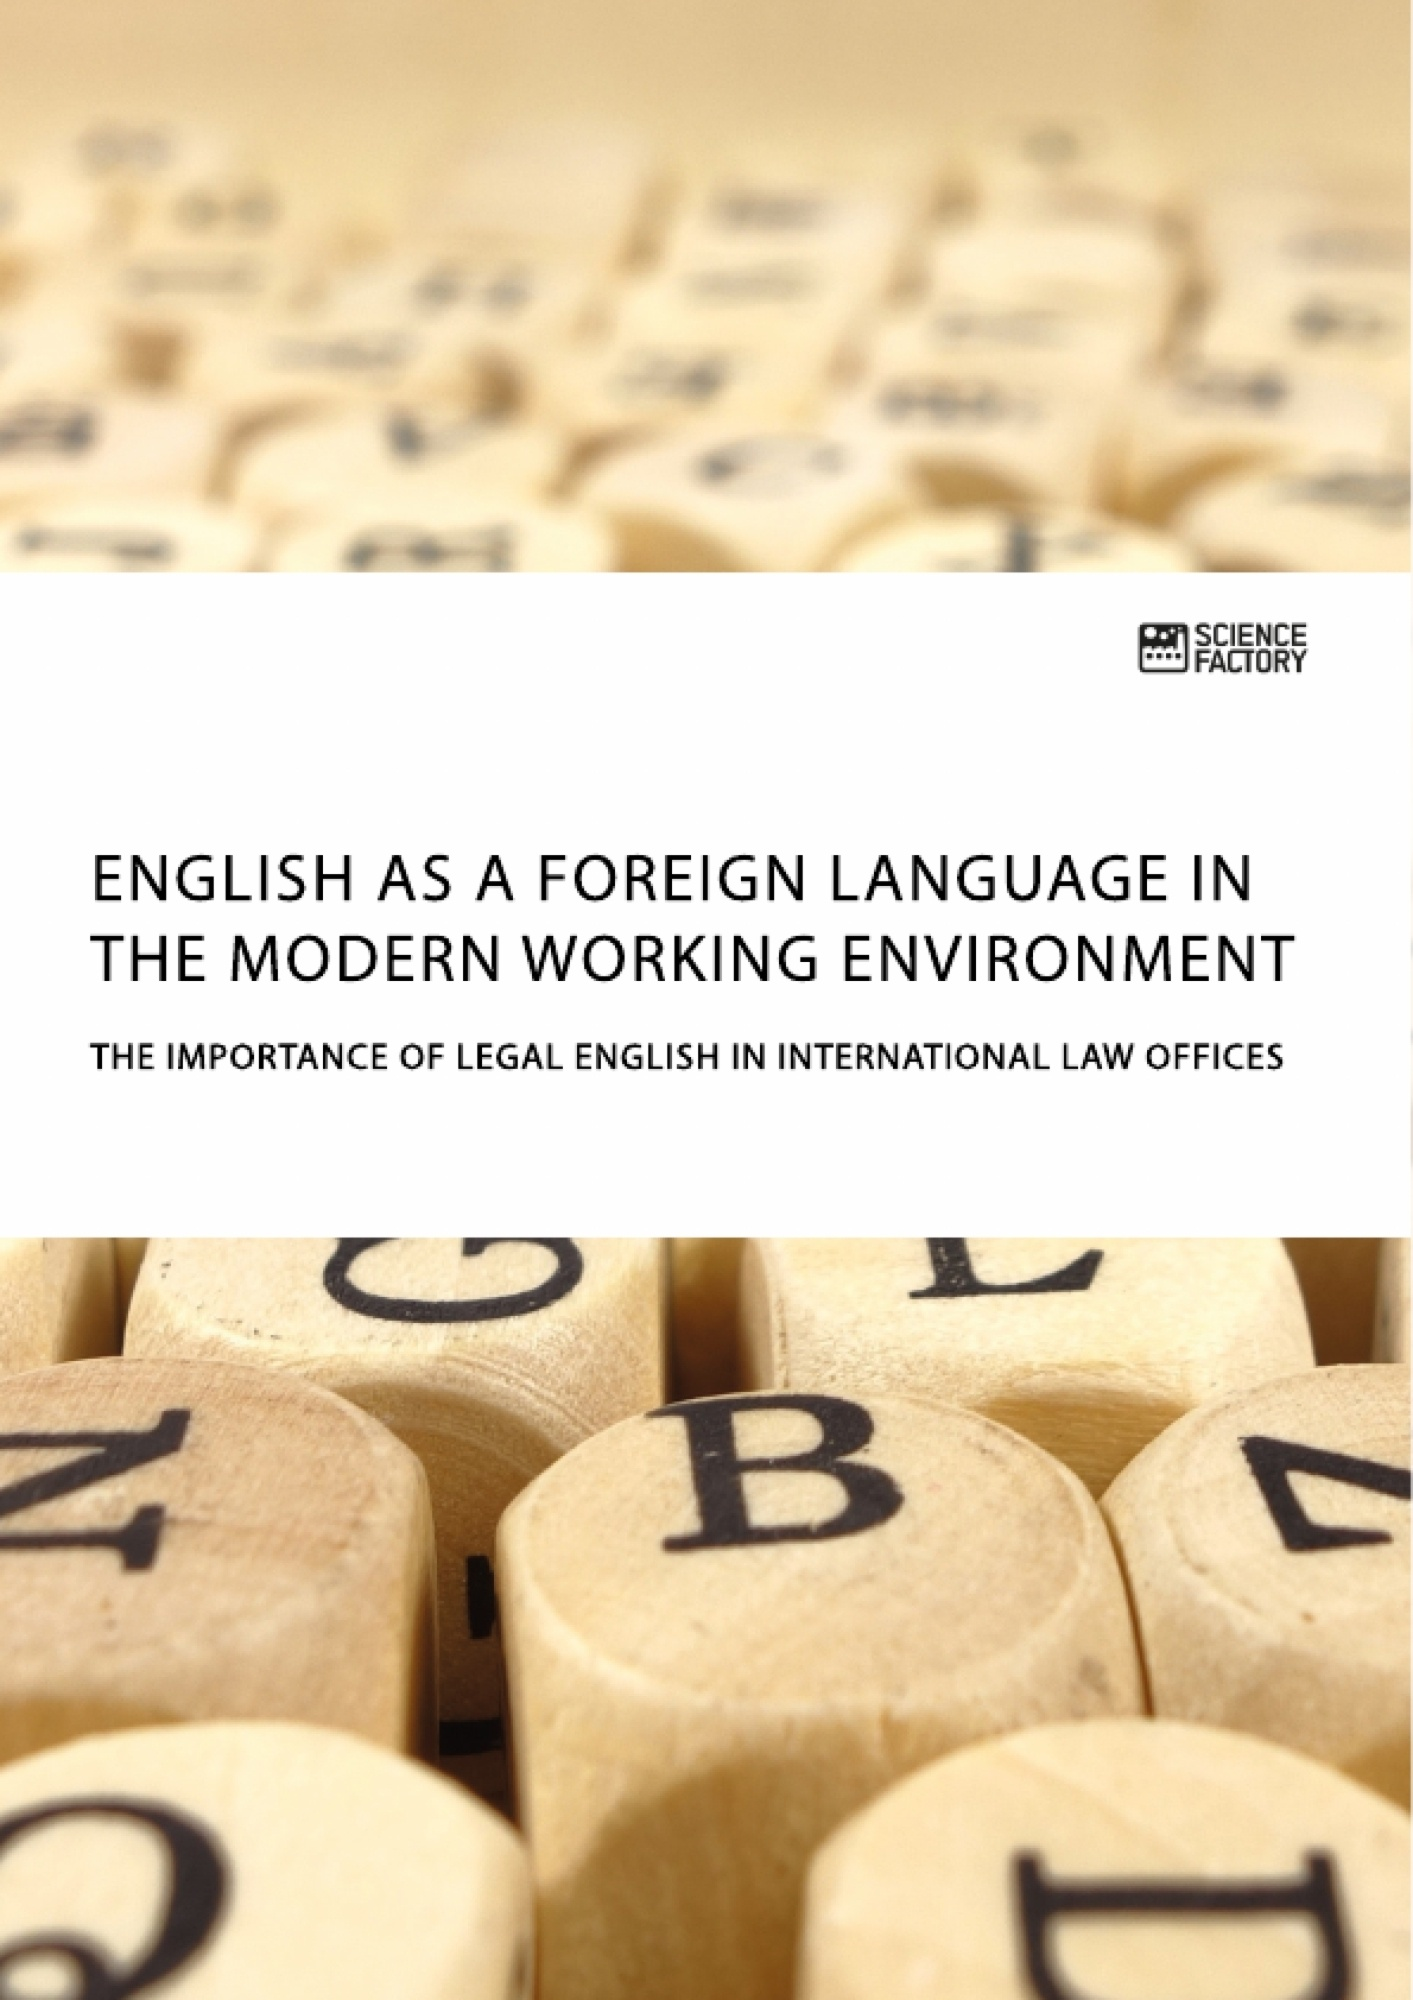 Title: English as a foreign language in the modern working environment. The importance of Legal English in international law offices